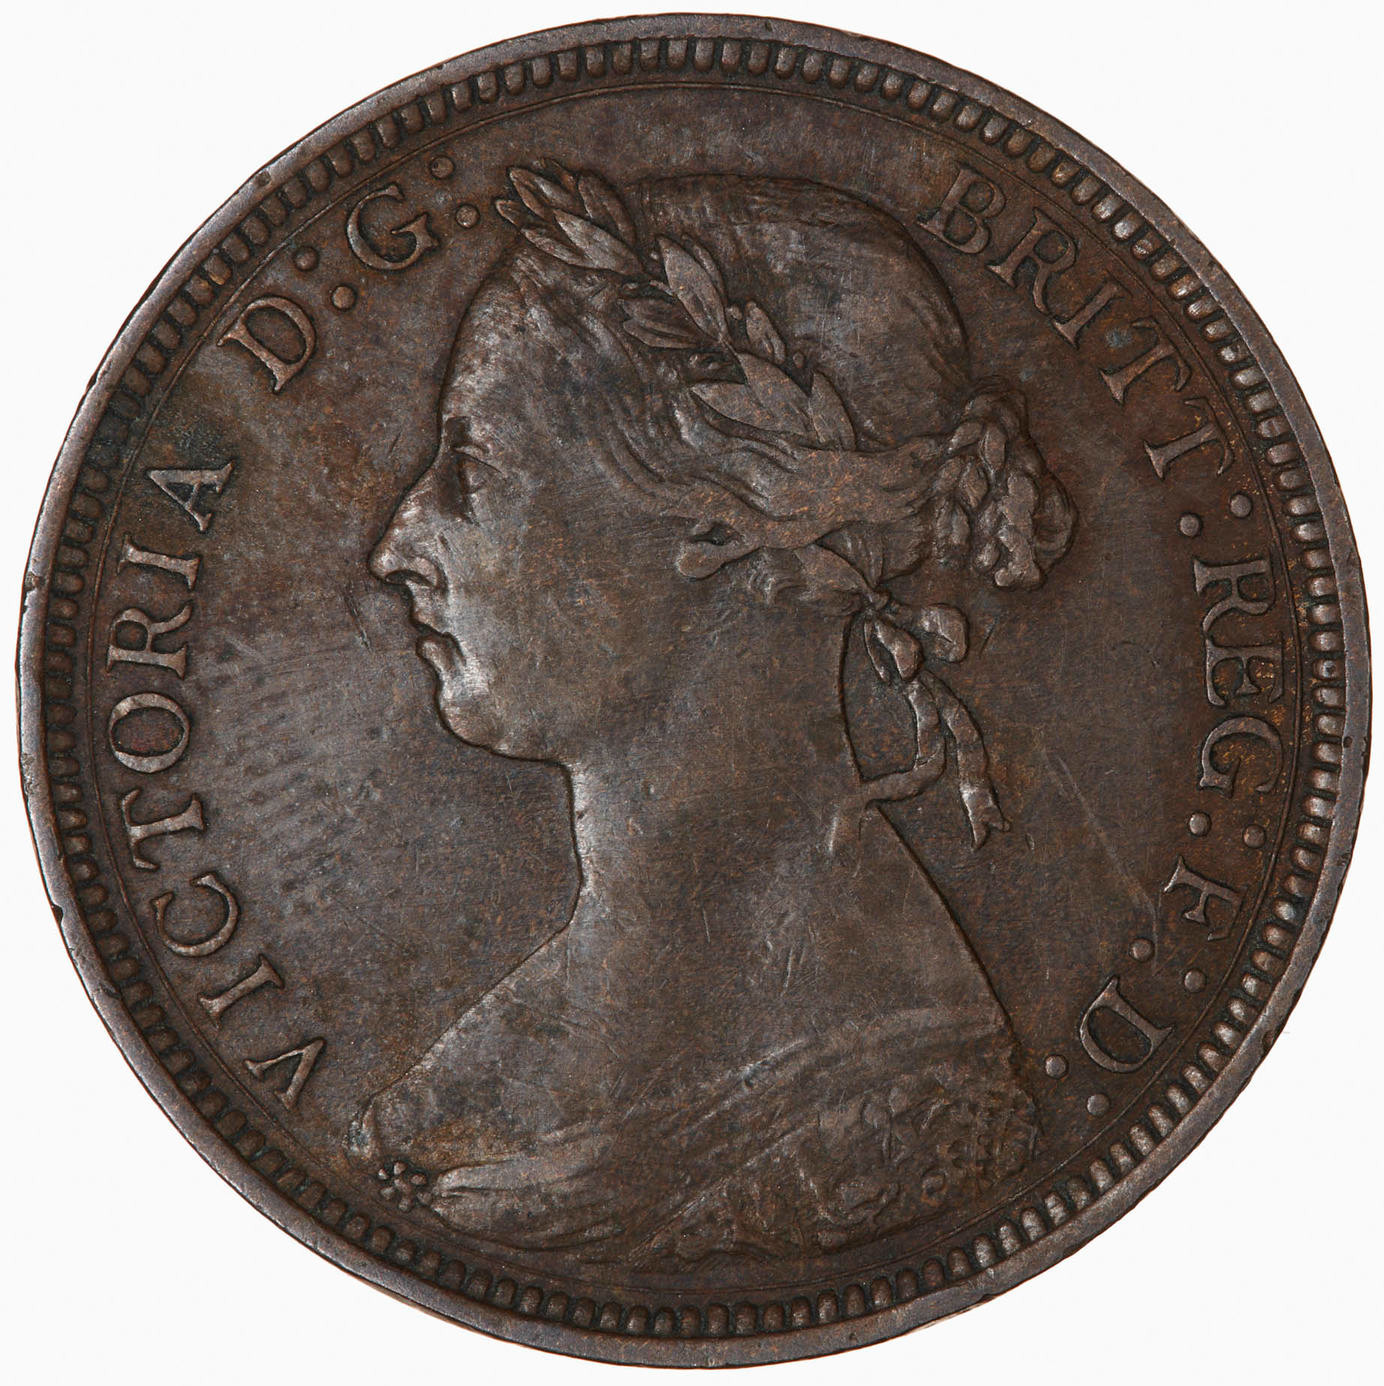 Halfpenny 1887: Photo Coin - Halfpenny, Queen Victoria, Great Britain, 1887